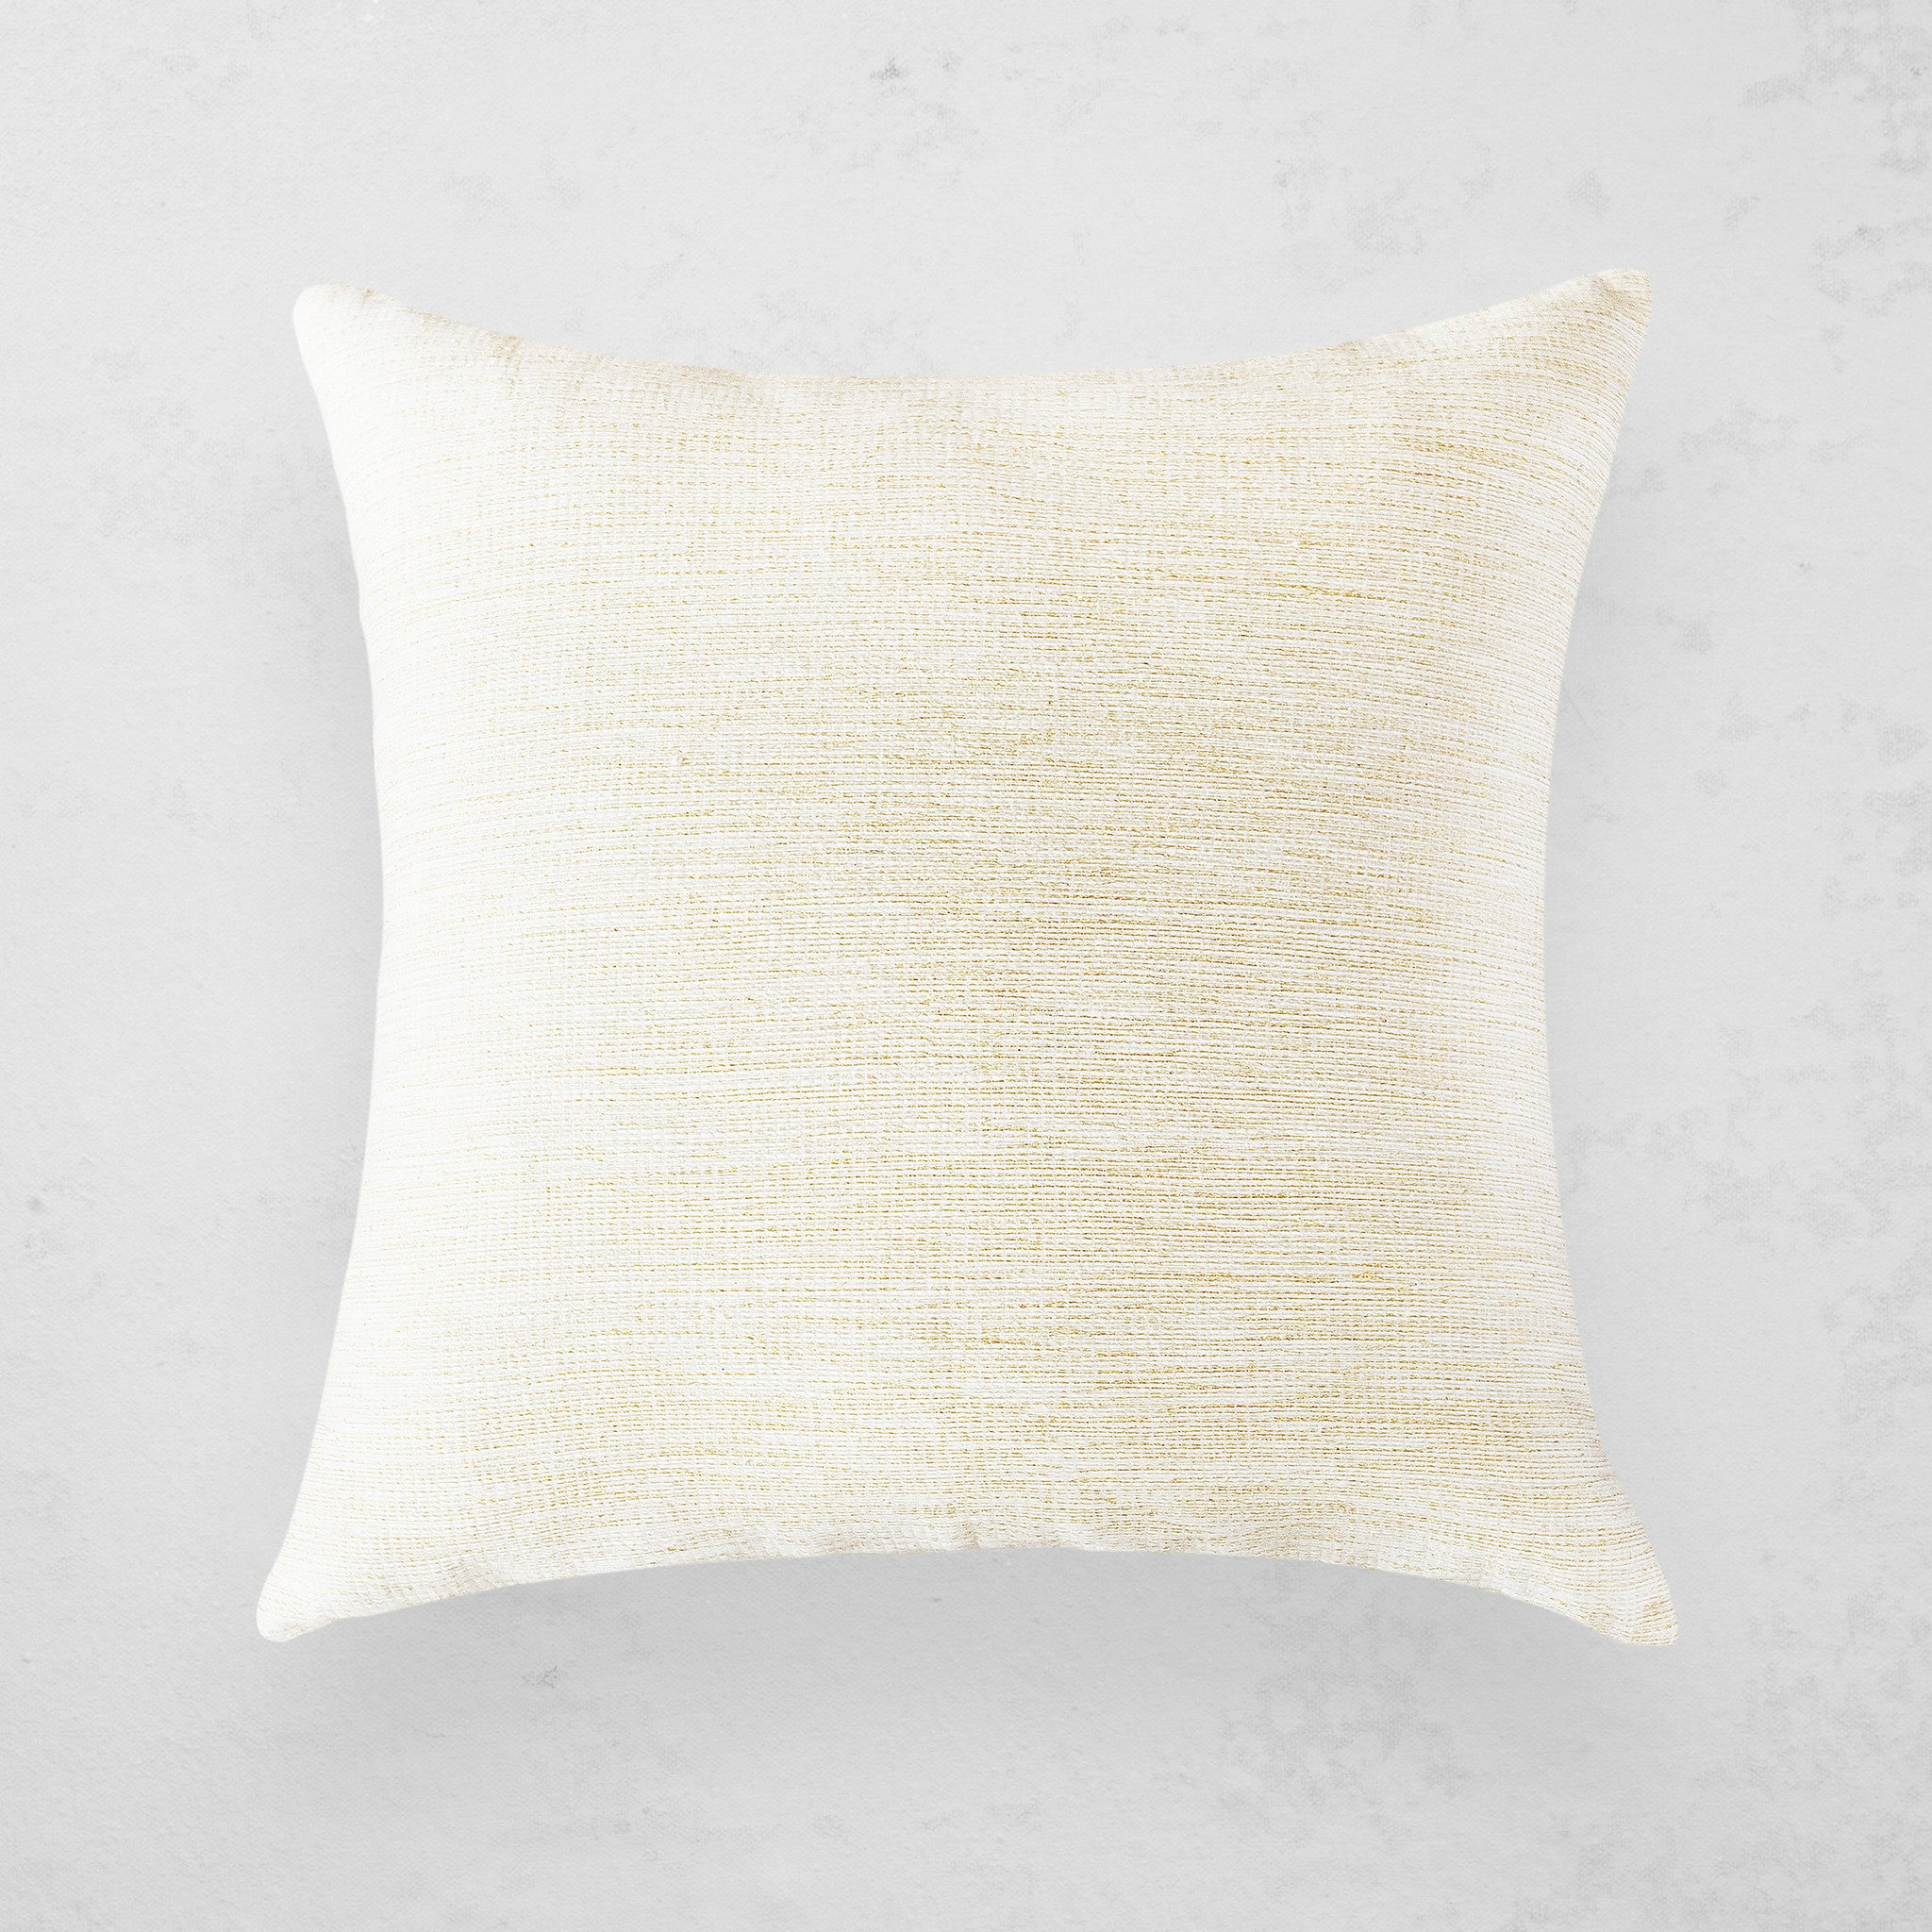 Nigist Pillow - Gold